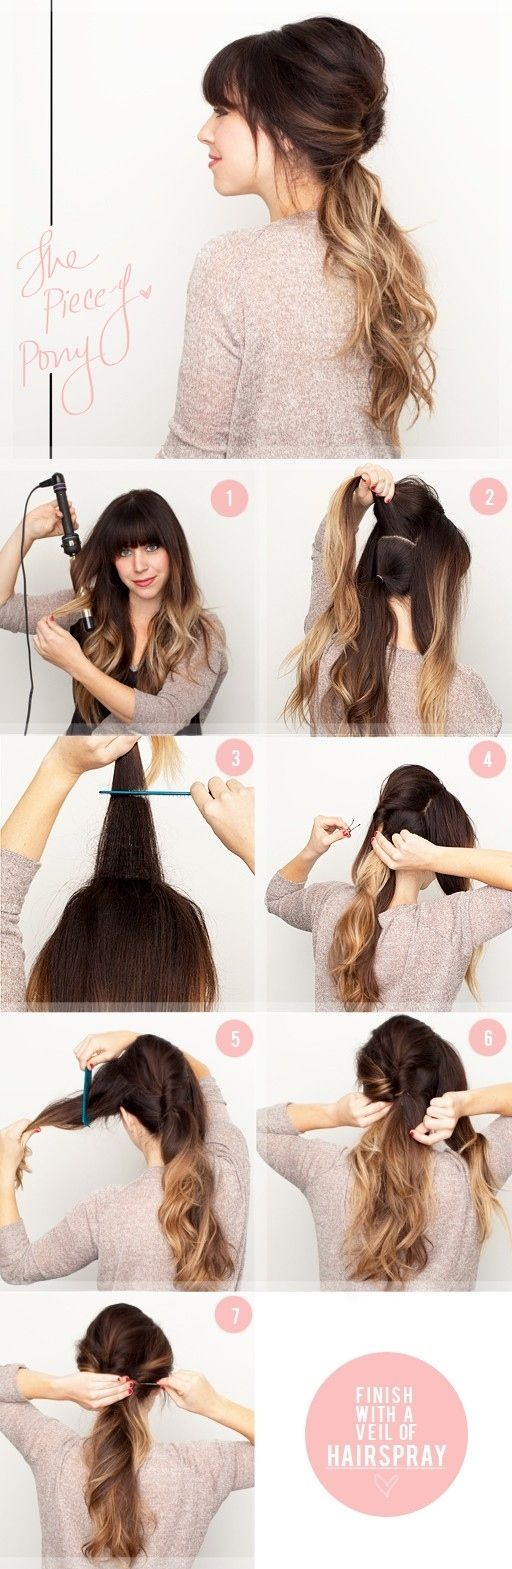 Super easy! Just did it, took 5 minutes and looks really cute!